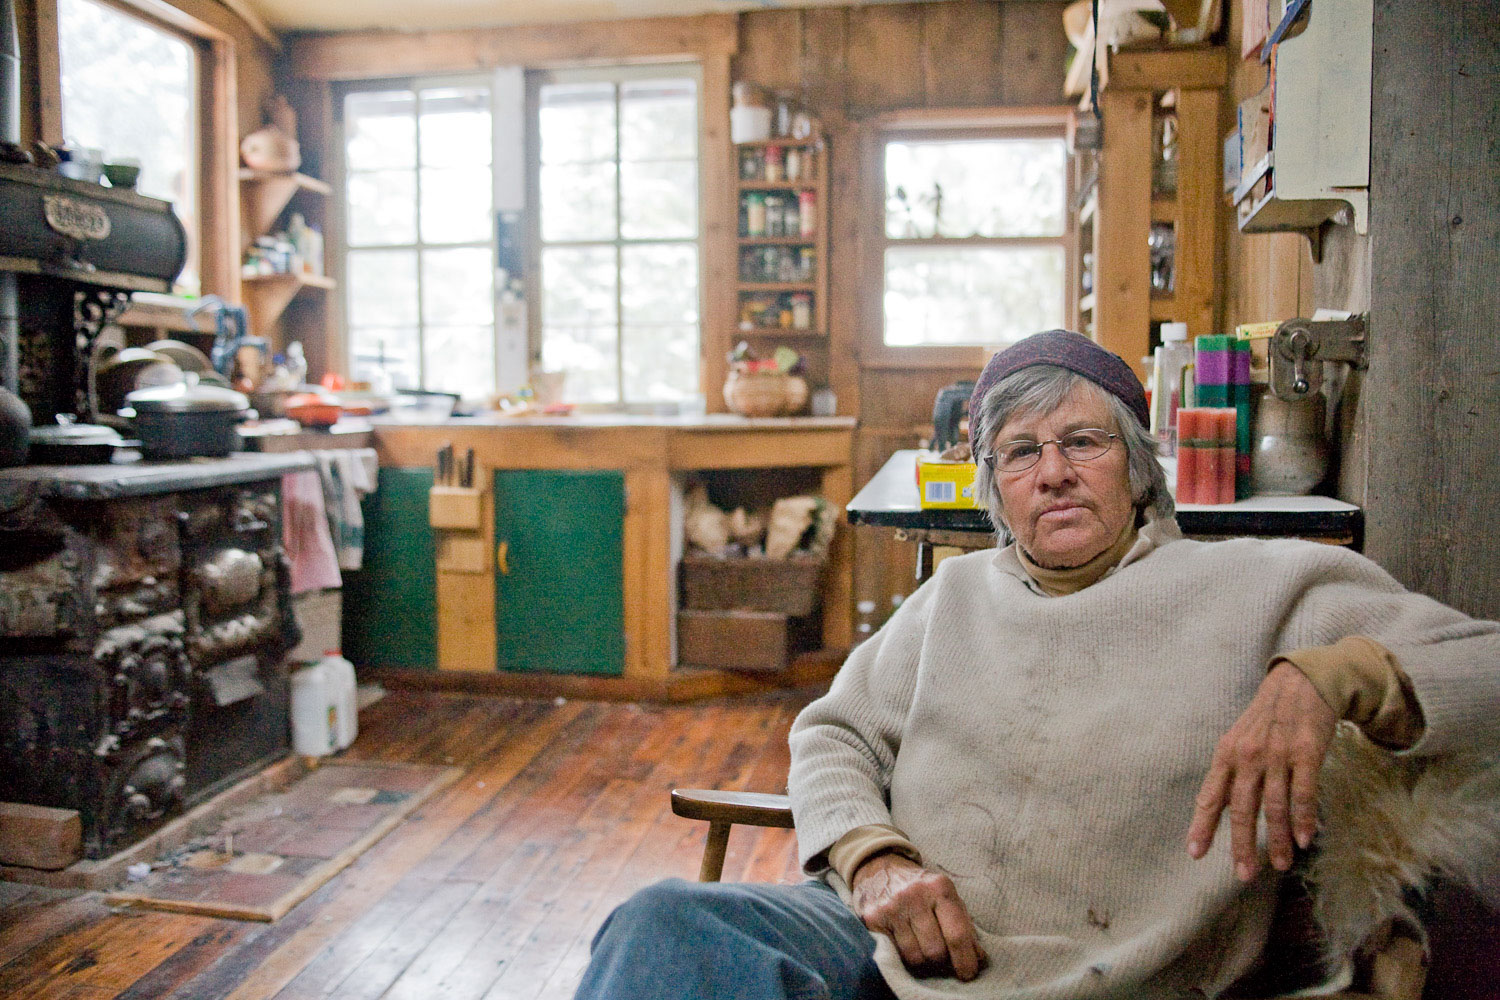 Montana Artist Nan Parsons sits in the rustic house she built herself outside of the small town of Basin